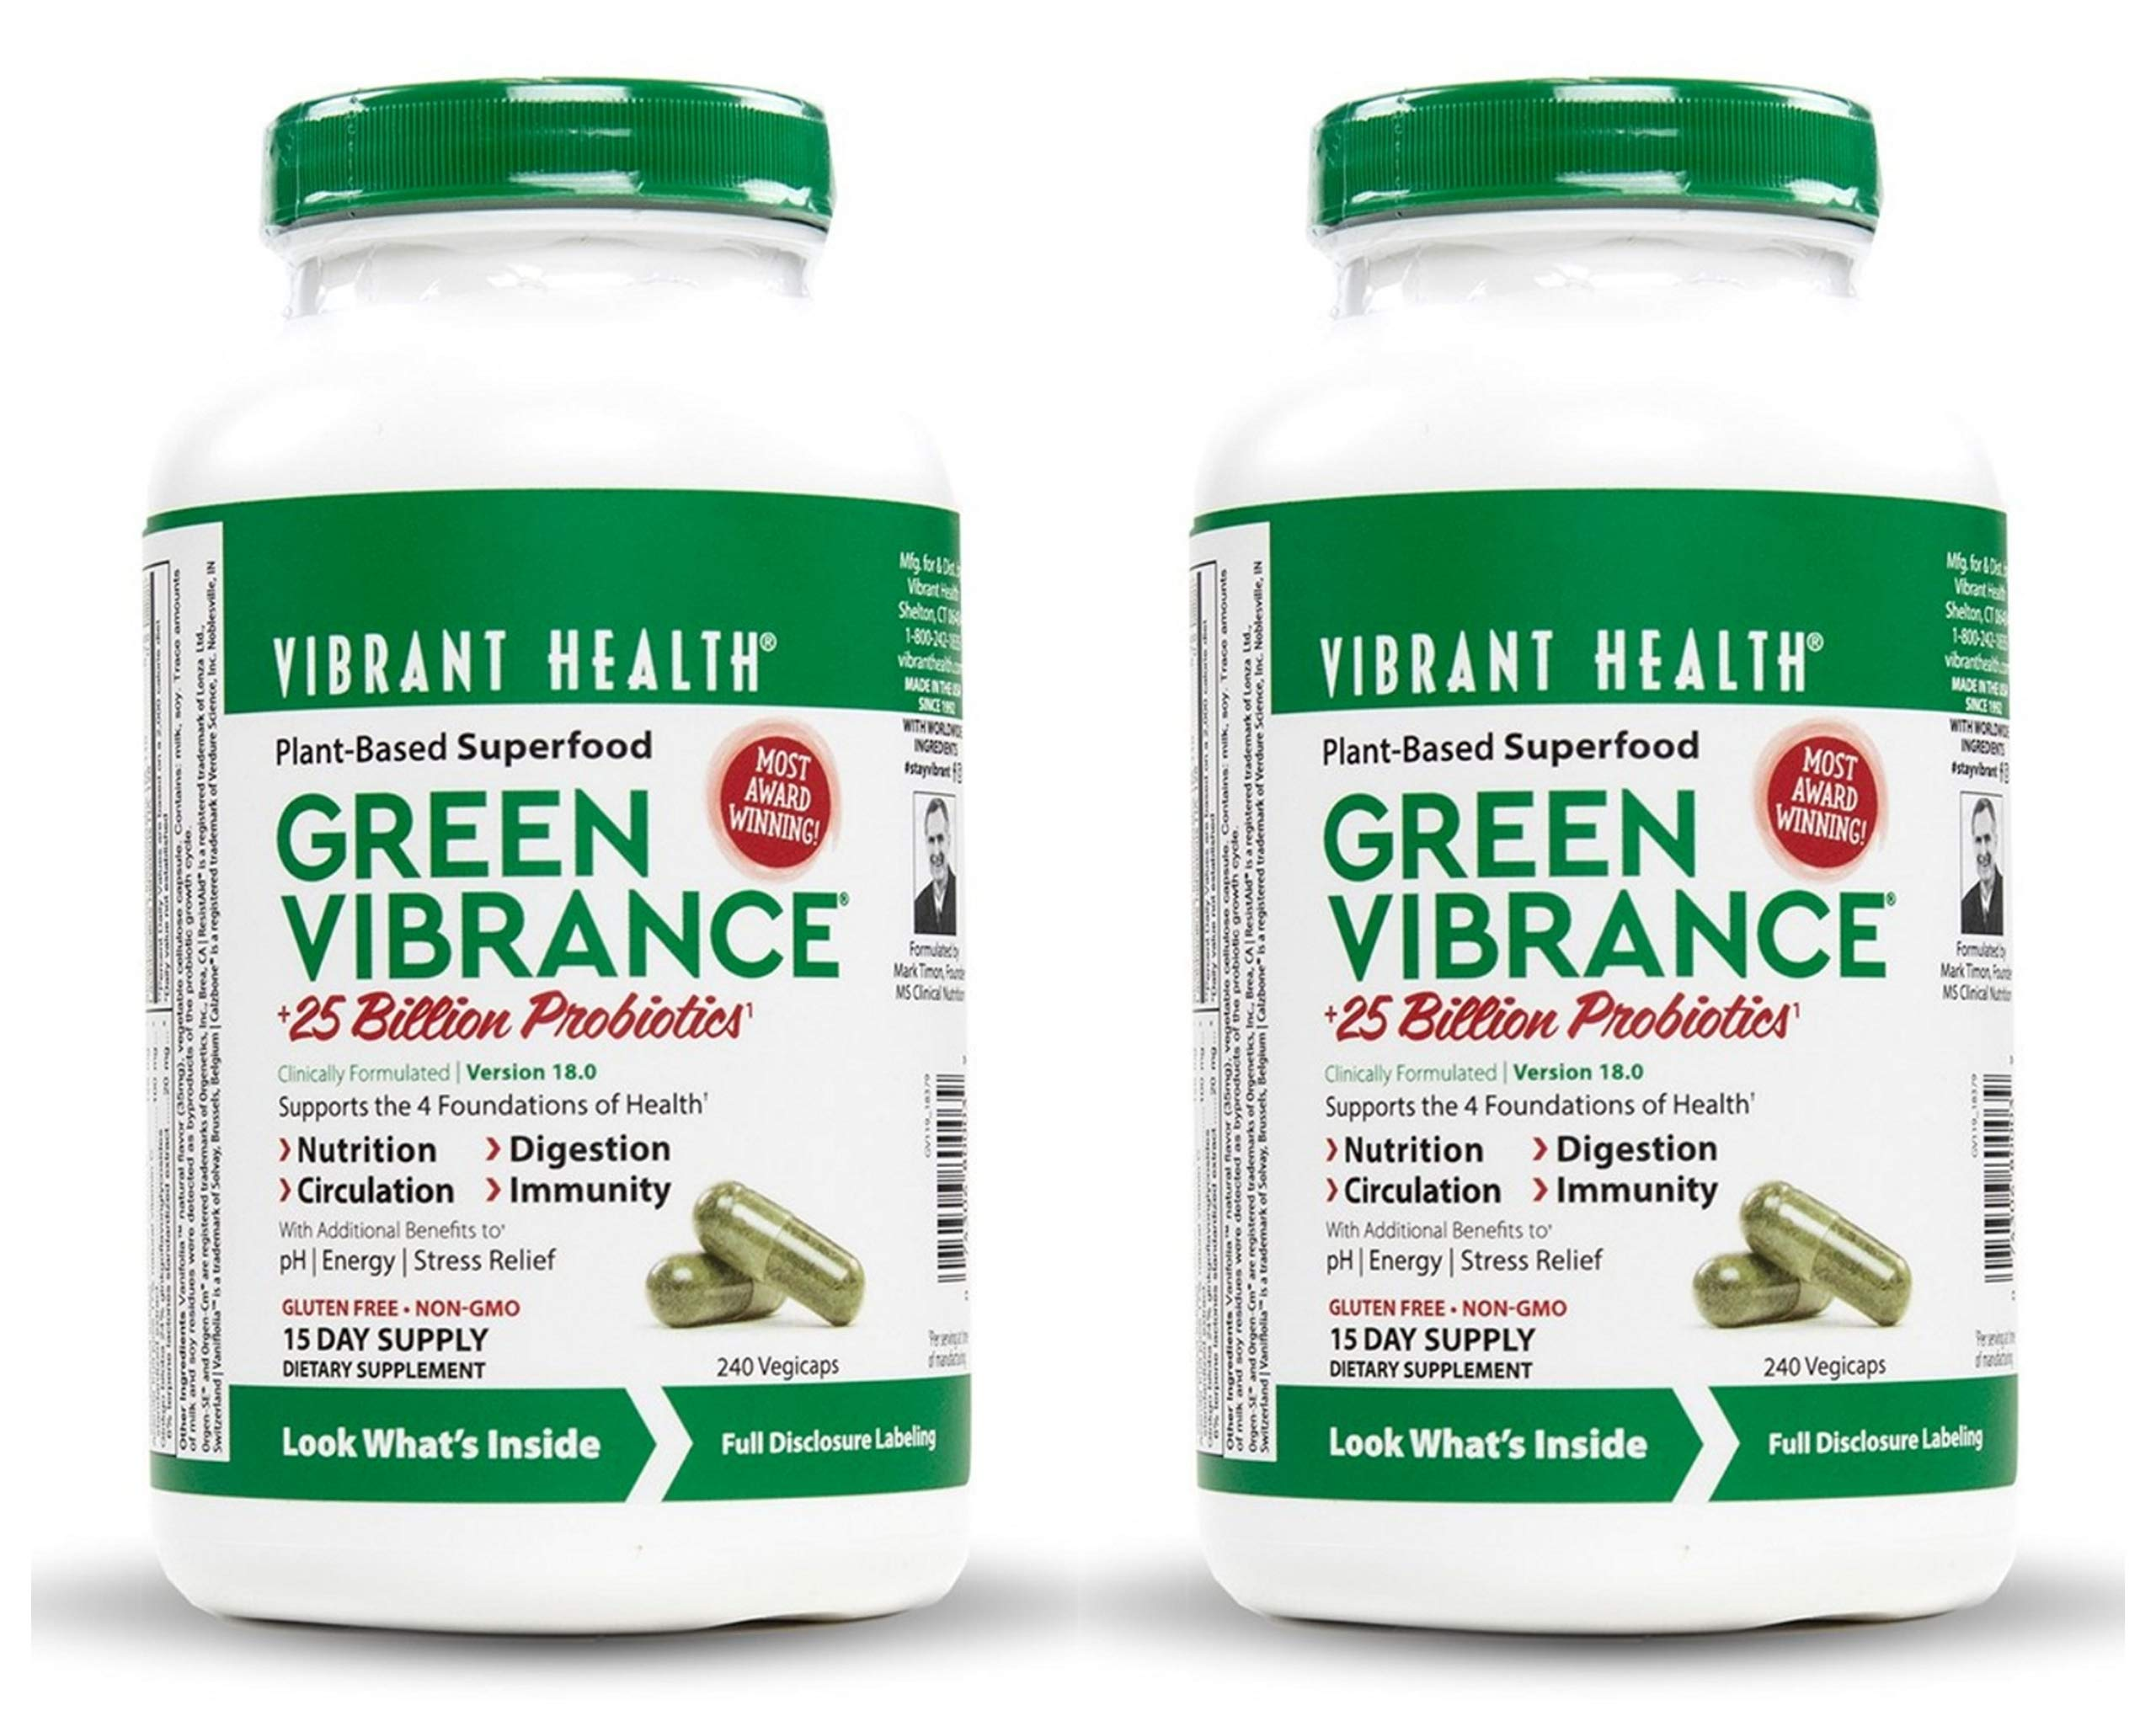 VibrantHealth - Green Vibrance - 240 vegicaps - 2 pack by Vibrant Health